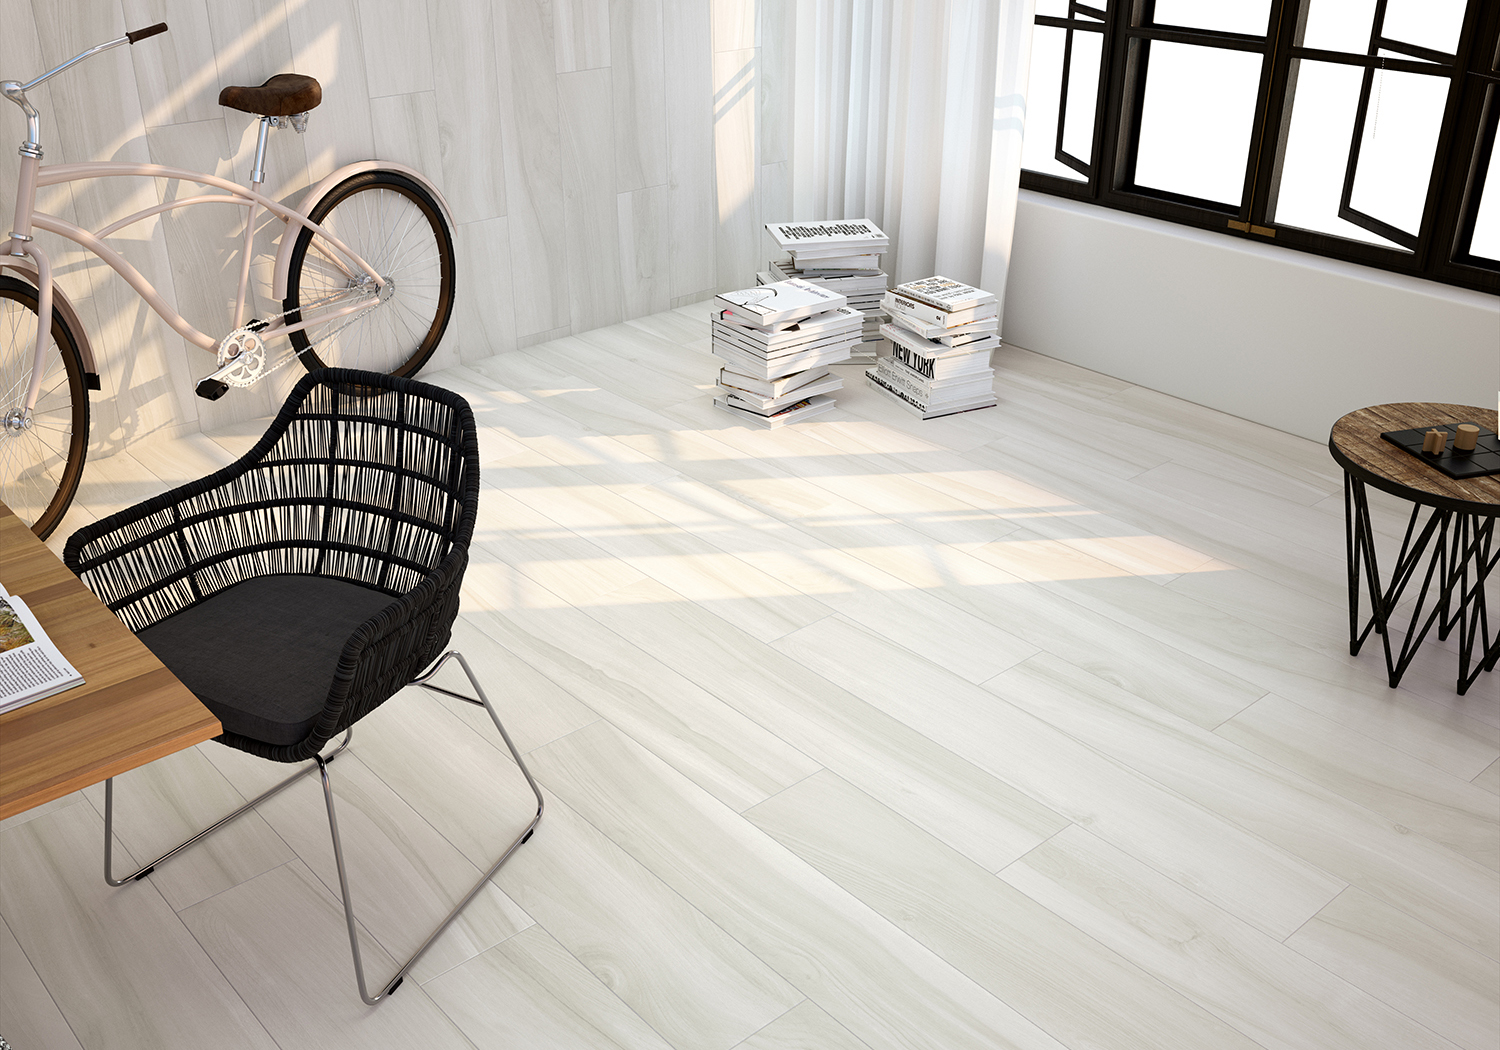 Polished White Porcelain Wall and Floor Tiles